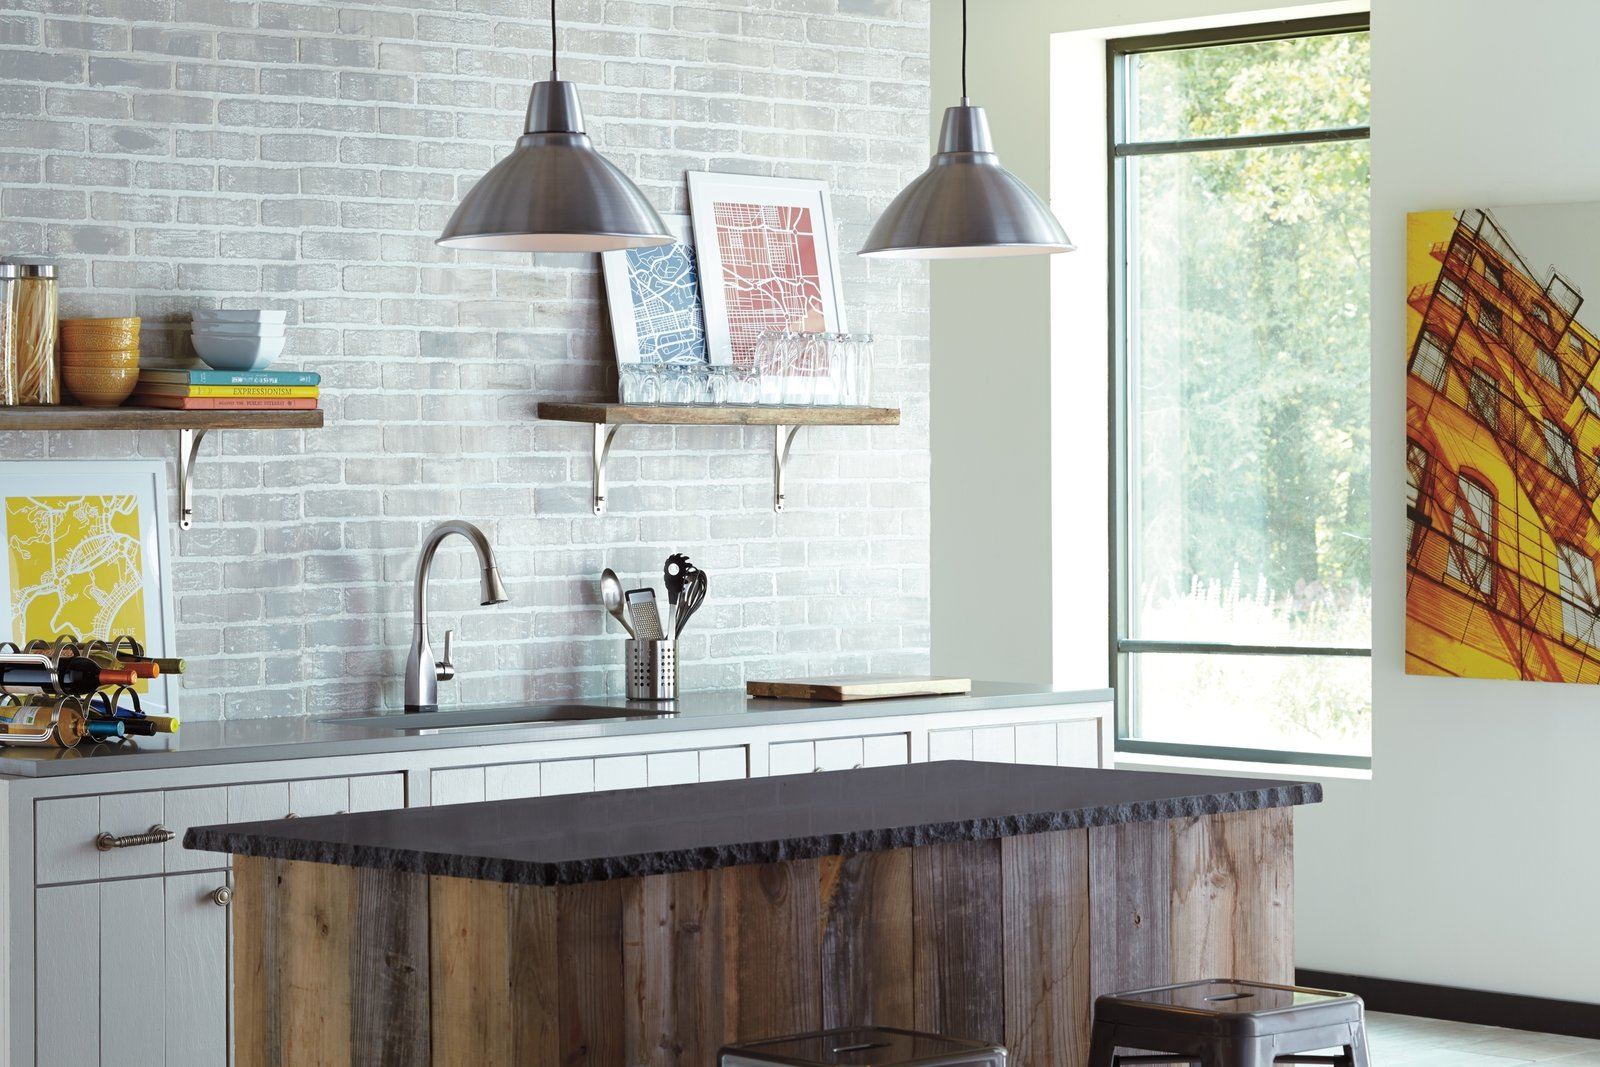 Photo 6 of 8 in 8 Ways to Refresh and Personalize Your Kitchen